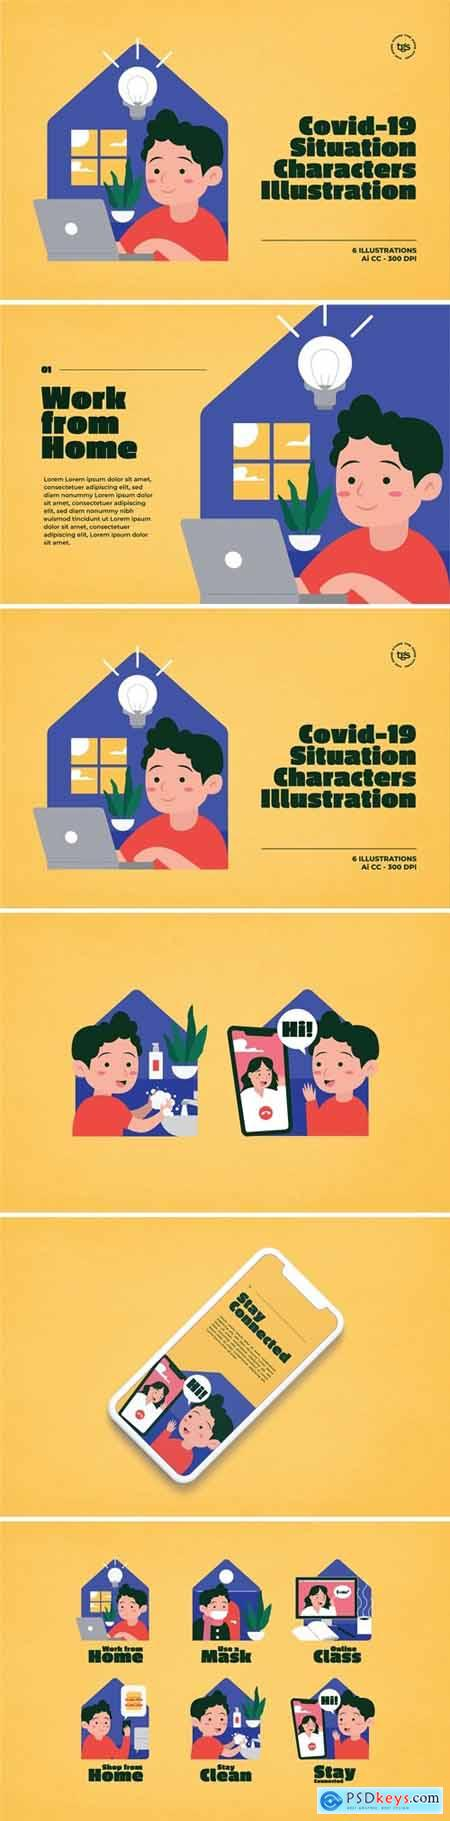 Covid-19 Situation Characters Illustration